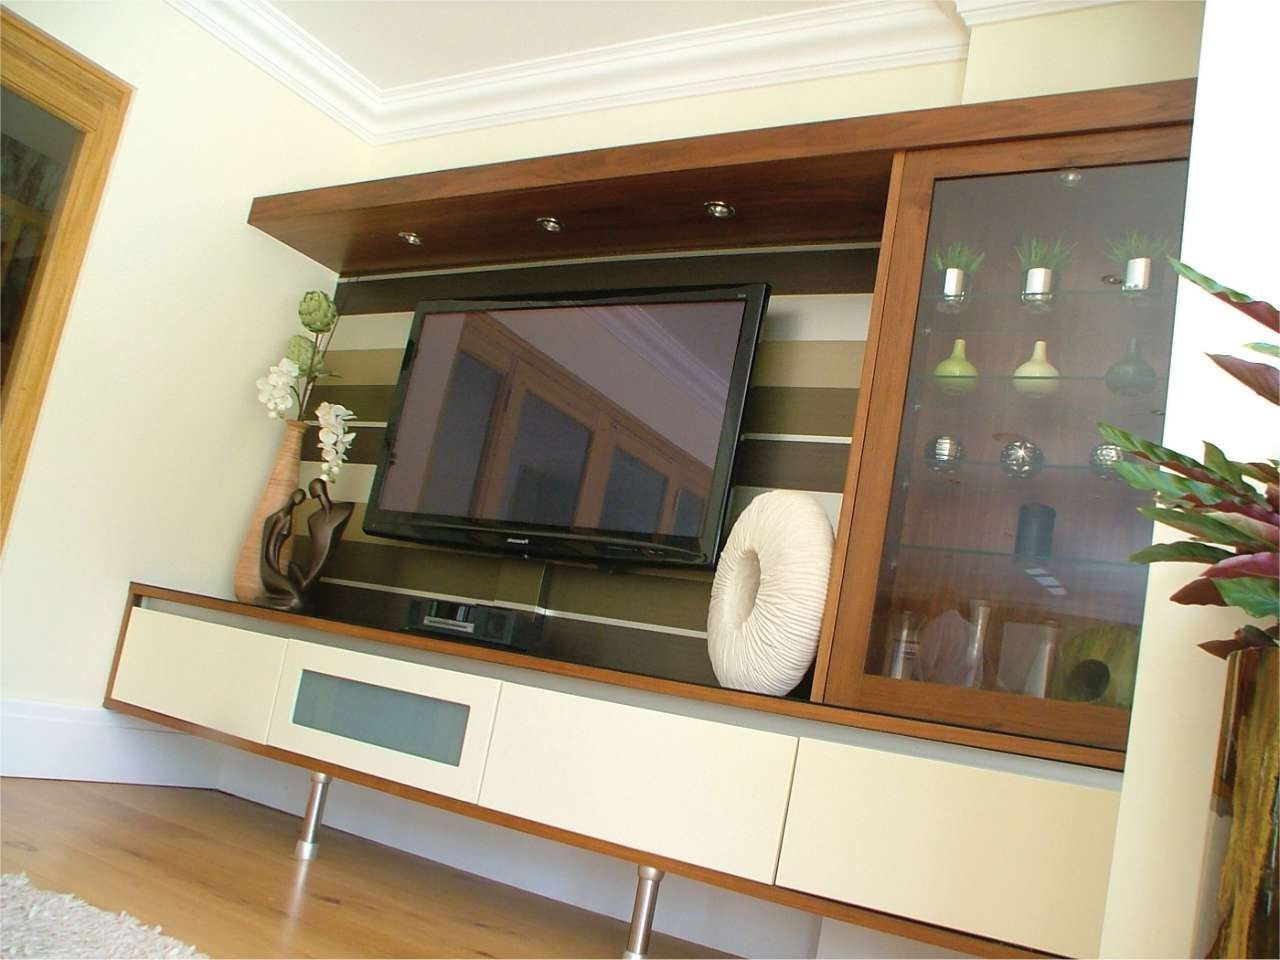 Bespoke Tv Cabinet | Choice Interiors In Bespoke Tv Cabinets (View 14 of 20)